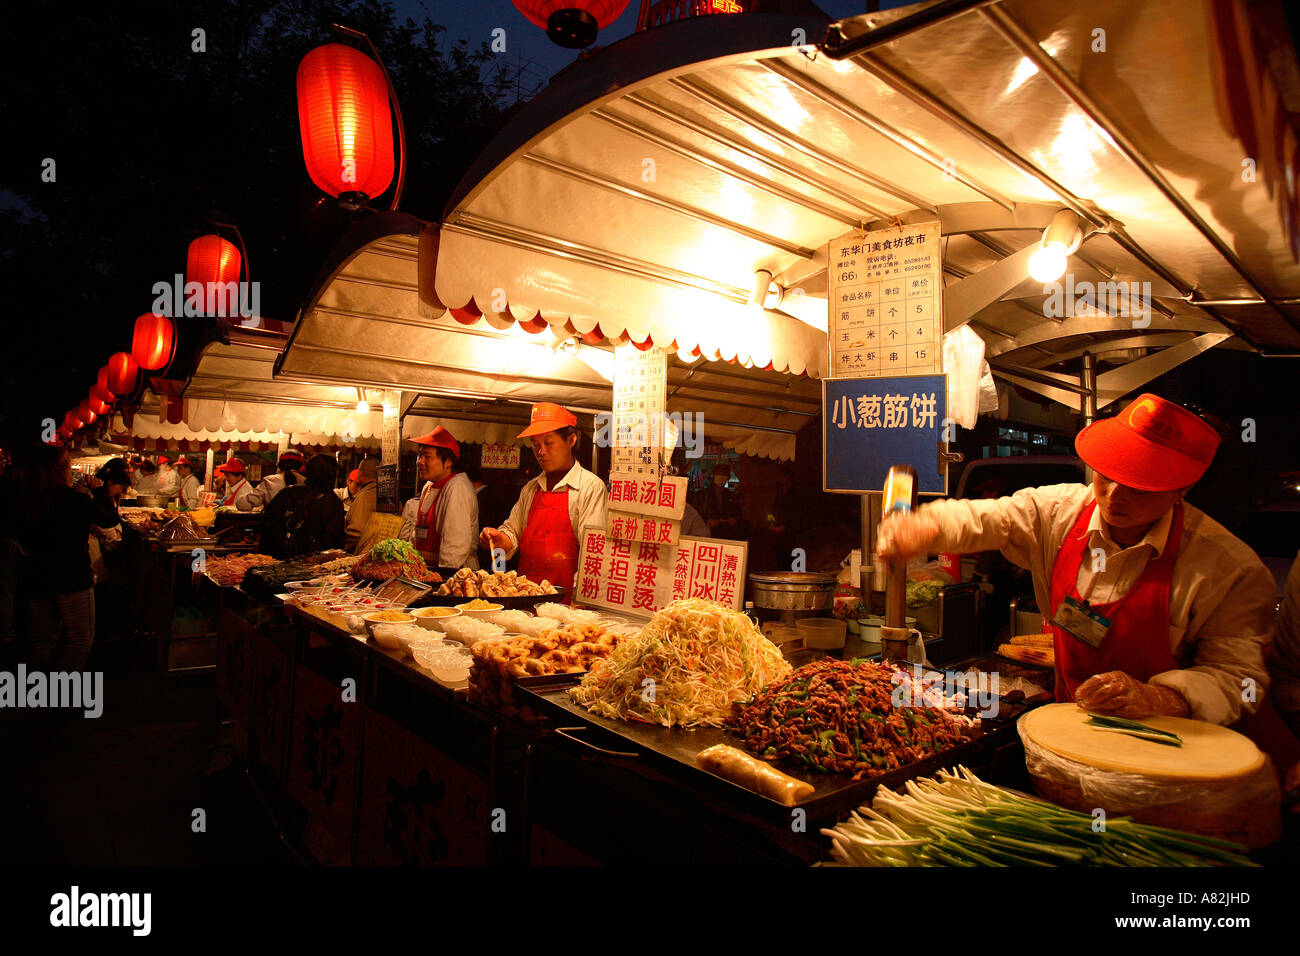 China, Beijing, food nightmarket towards Wang Fu Jing Street - Stock Image